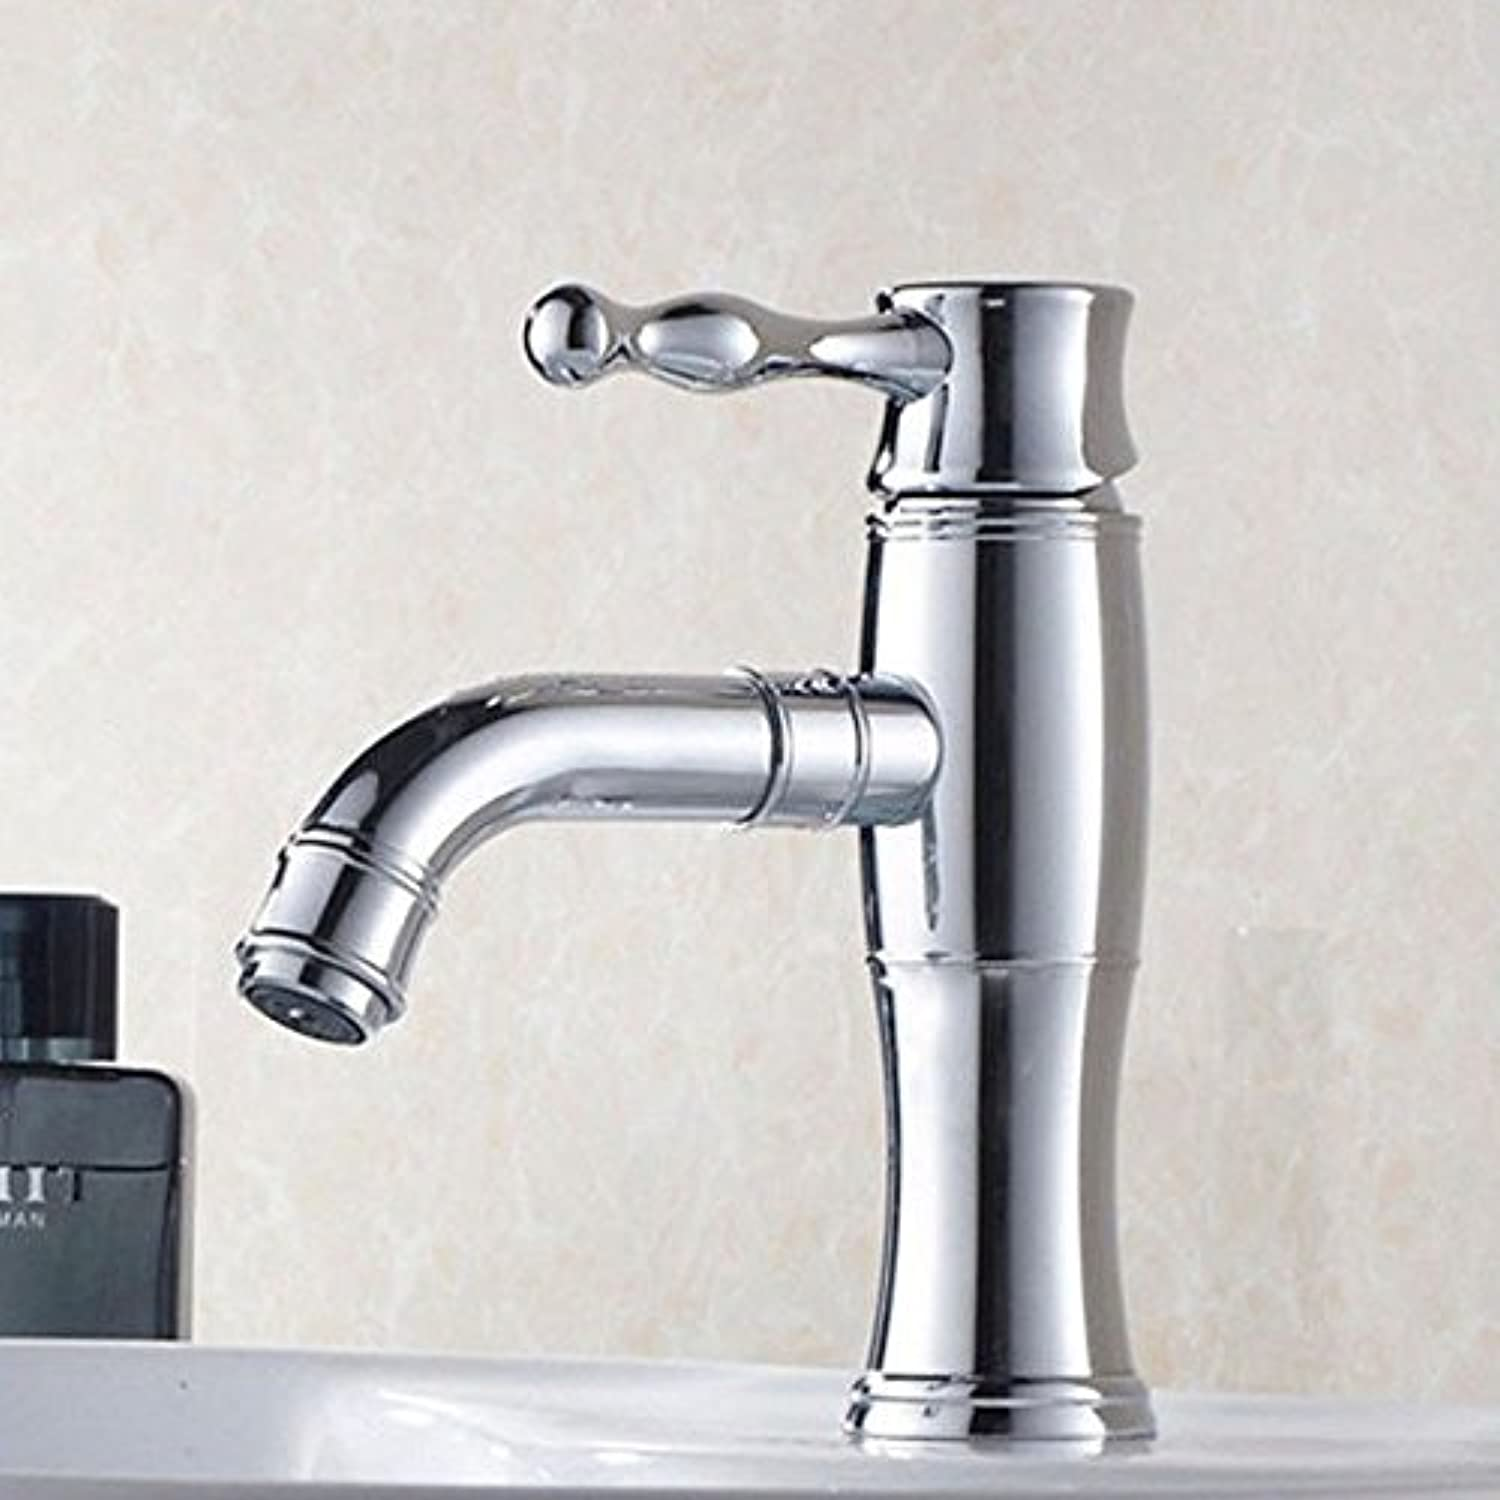 ETERNAL QUALITY Bathroom Sink Basin Tap Brass Mixer Tap Washroom Mixer Faucet The modern all-copper bathroom single handle single hole to redate the basin mixer silver Ki